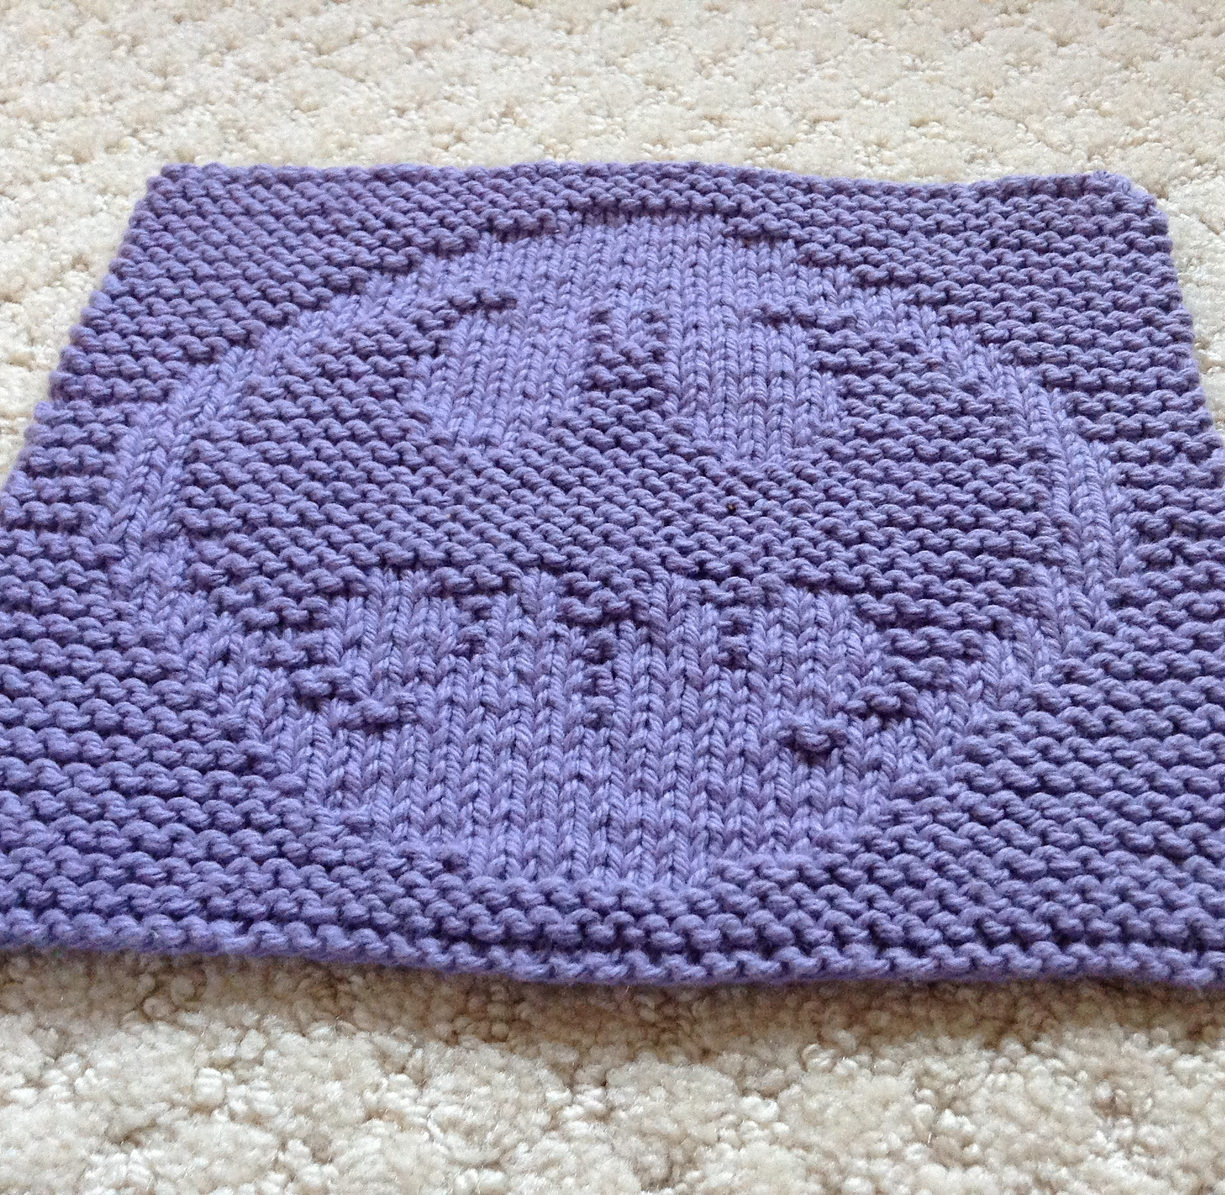 Washcloth Knitting Pattern Free Science Fiction And Fantasy Dish Cloth Knitting Patterns In The